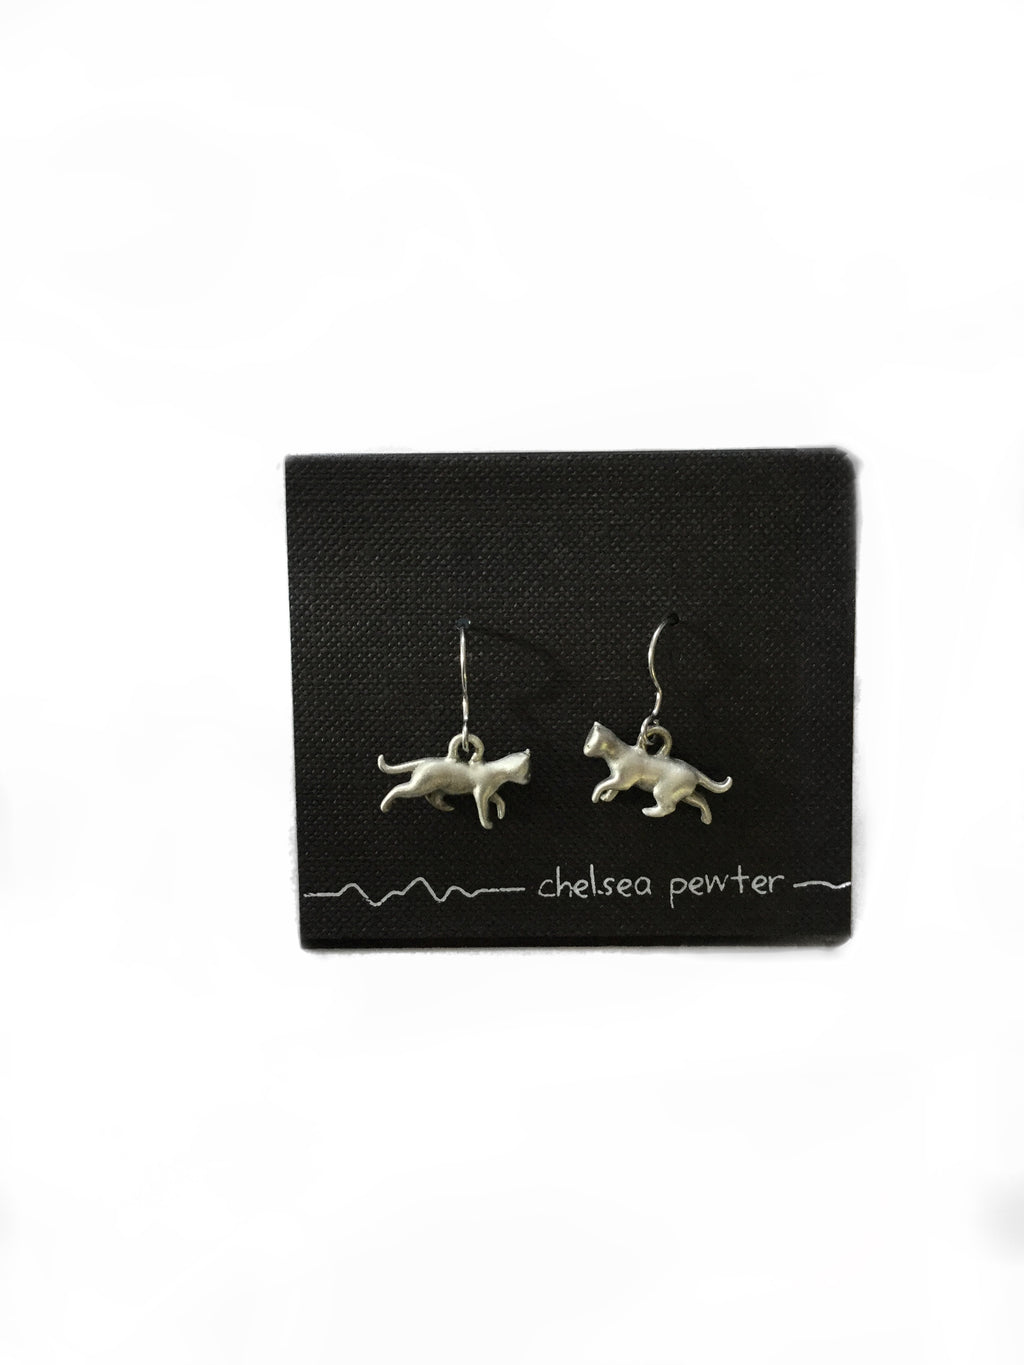 Chelsea Pewter - Cat Walking Earrings